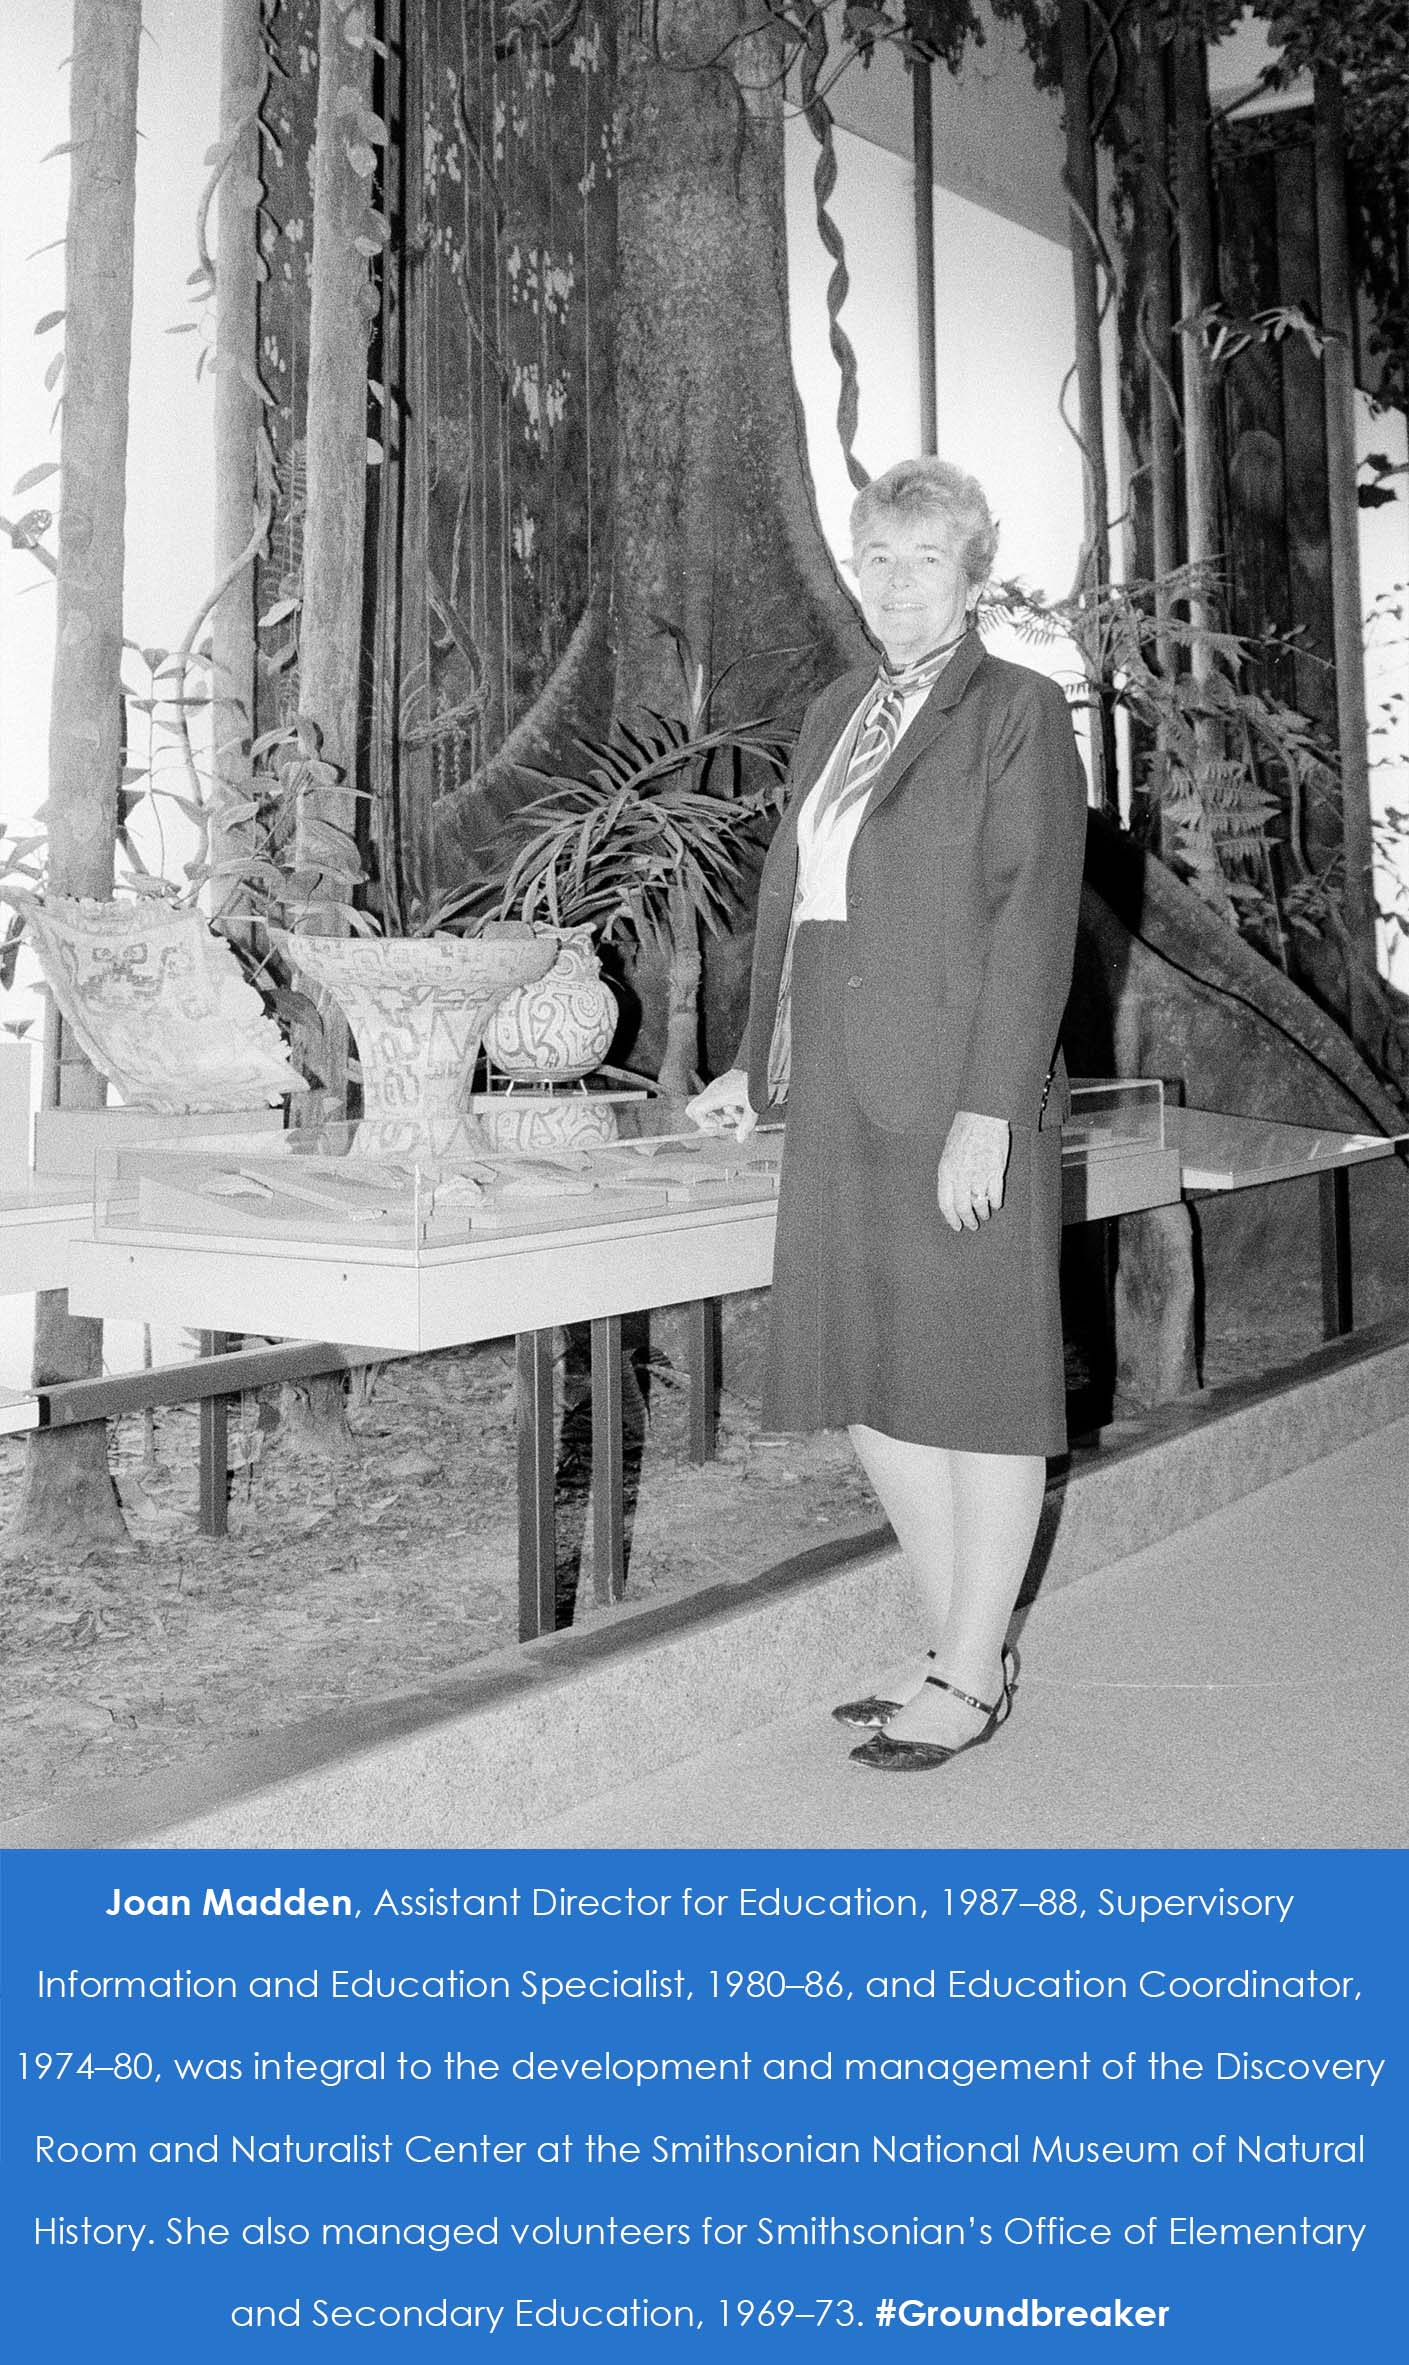 A woman stands in an exhibit space in front of pottery. A forrest or jungle scene is in the backgrou